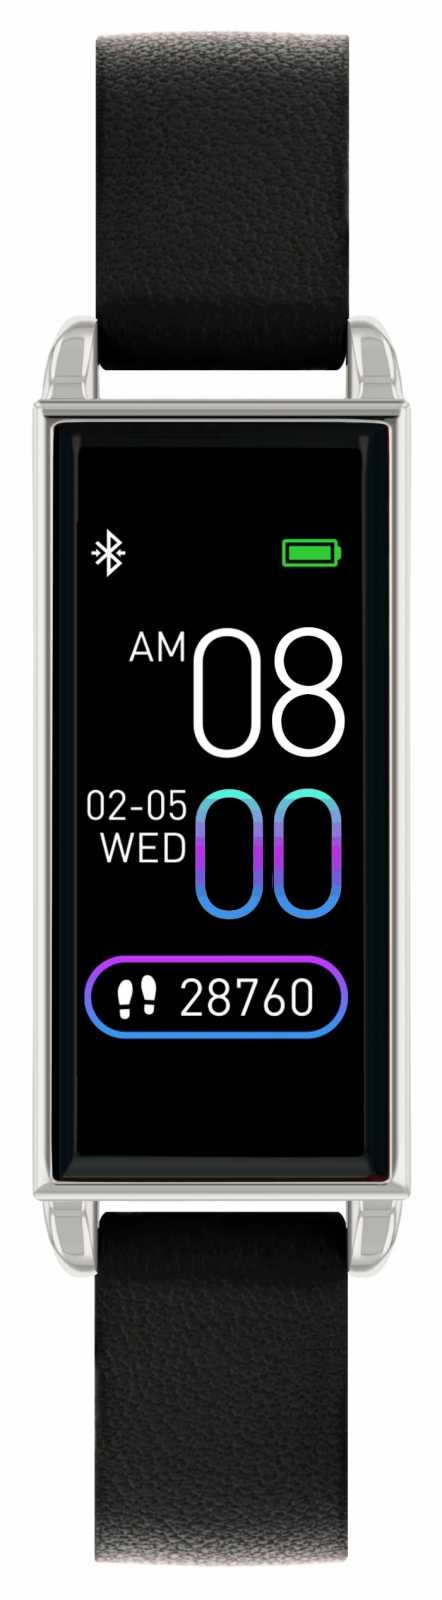 Reflex Active Series 2 Smart Watch | Colour Touch Screen | Black Leather Strap RA02-2007